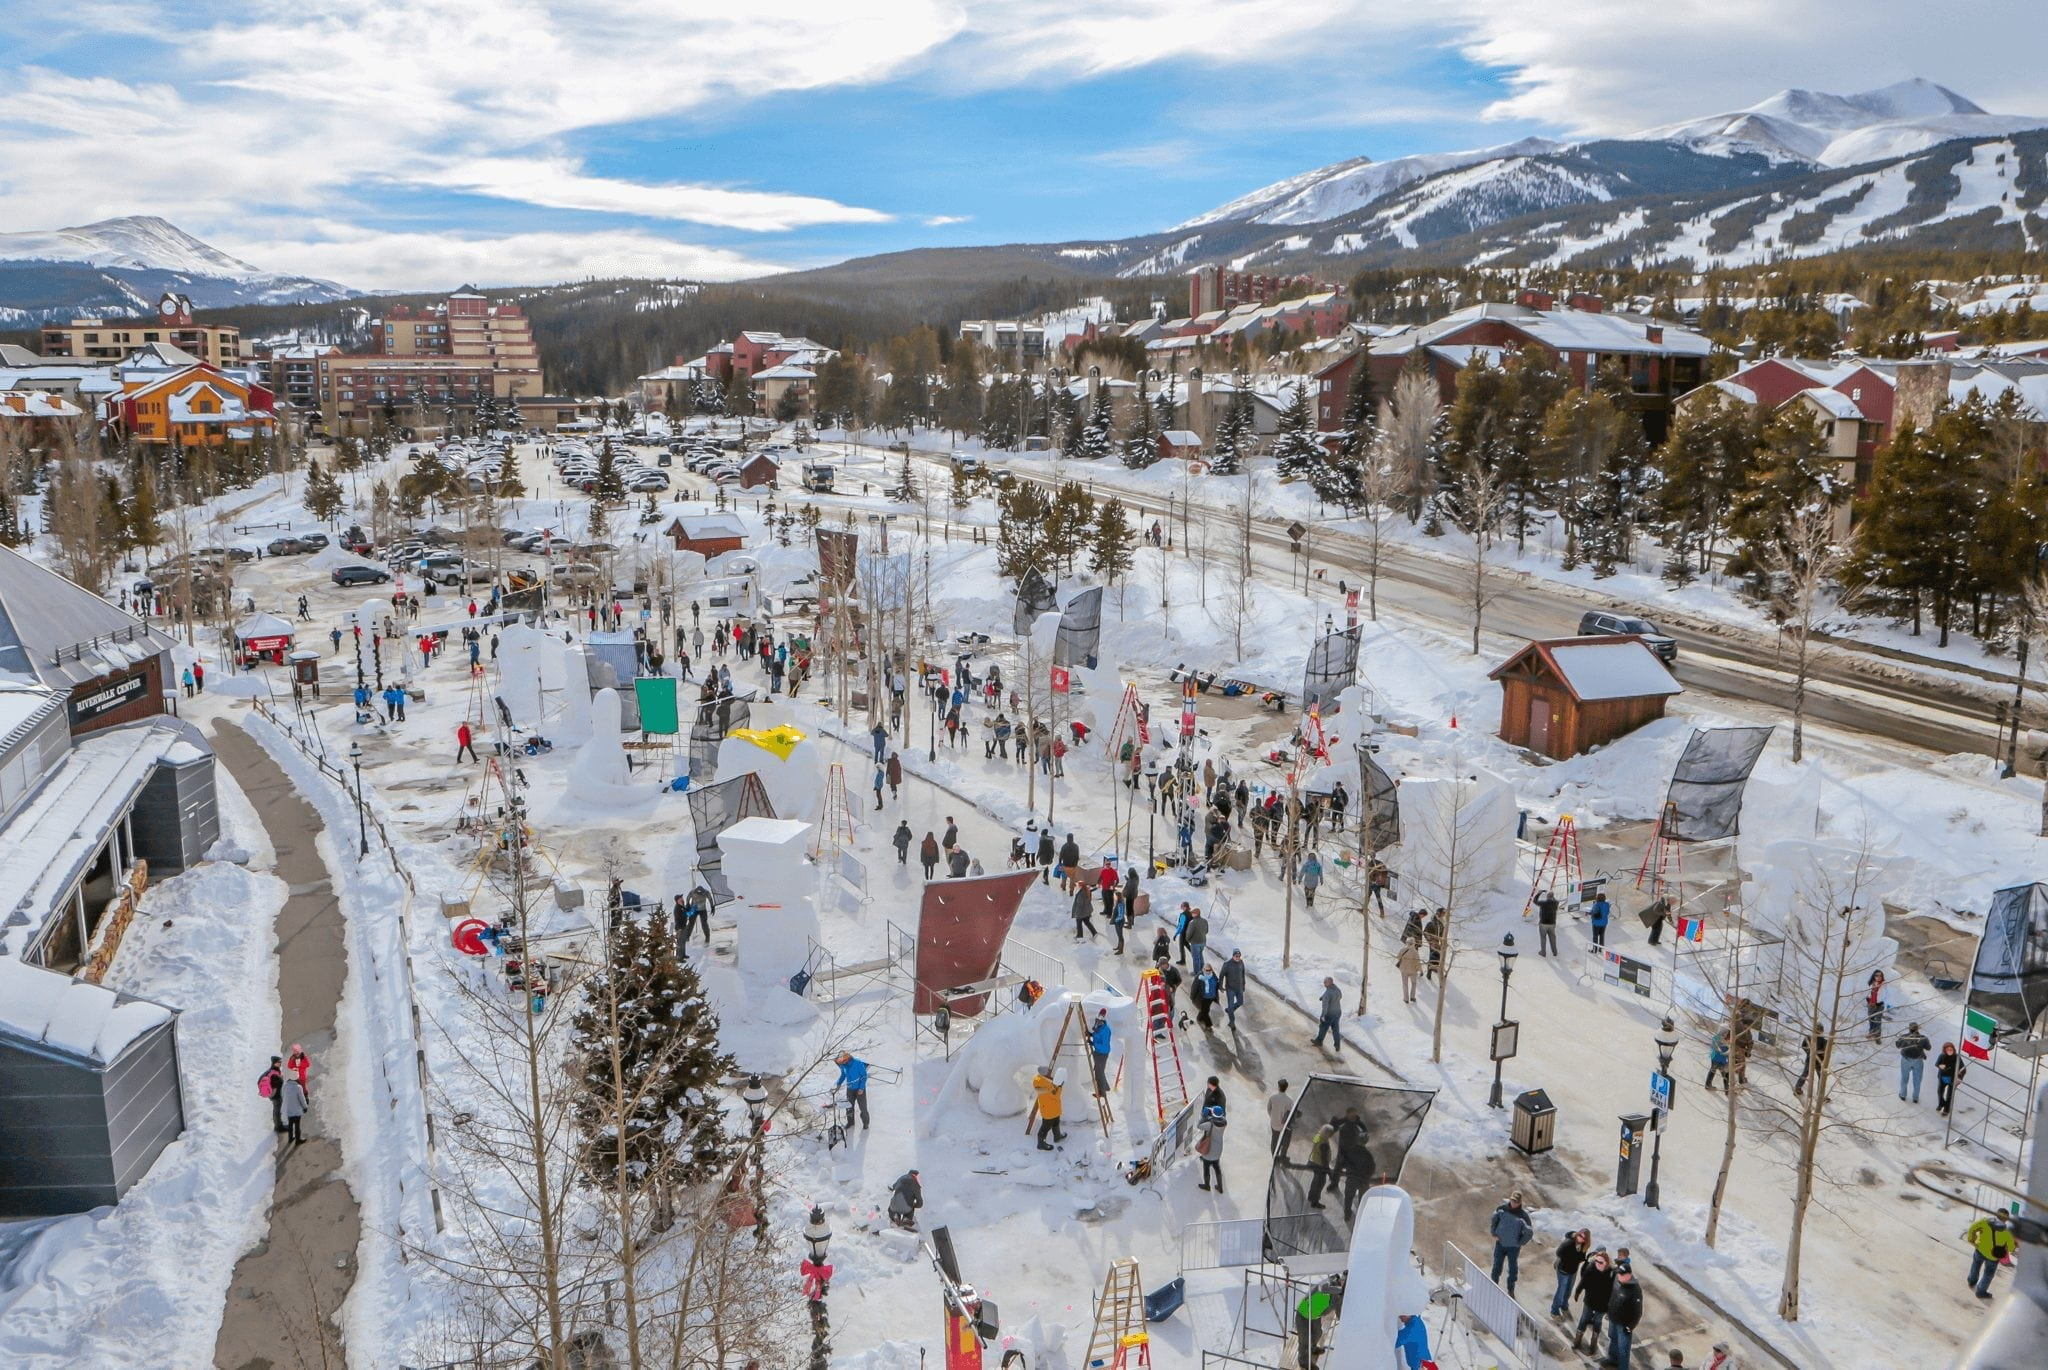 International Snow Sculpture Championships 2020